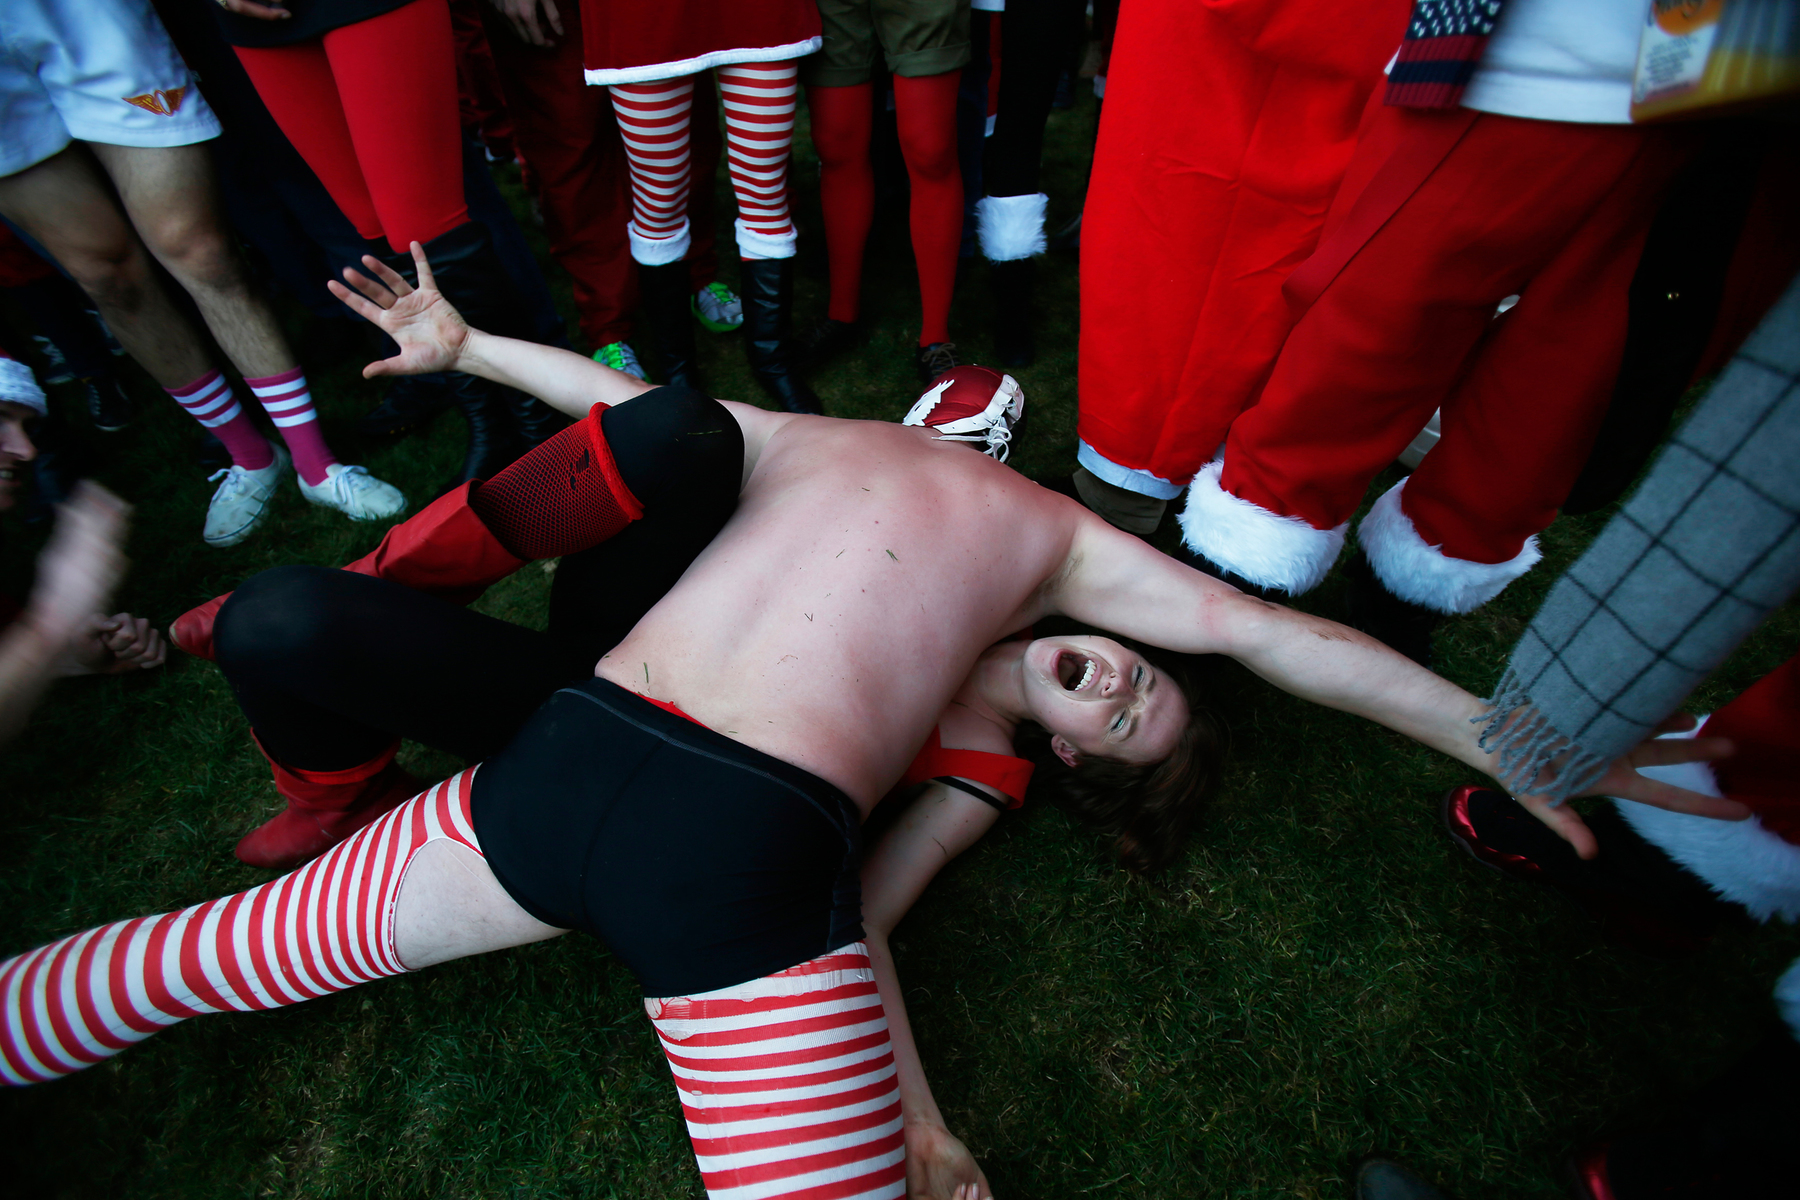 Jill Corey (below) reacts while wrestling with Dan Robertson (above) as holiday revelers dressed as Santa Claus gather in Duboce Park during the SantaCon event in San Francisco December 14, 2013.